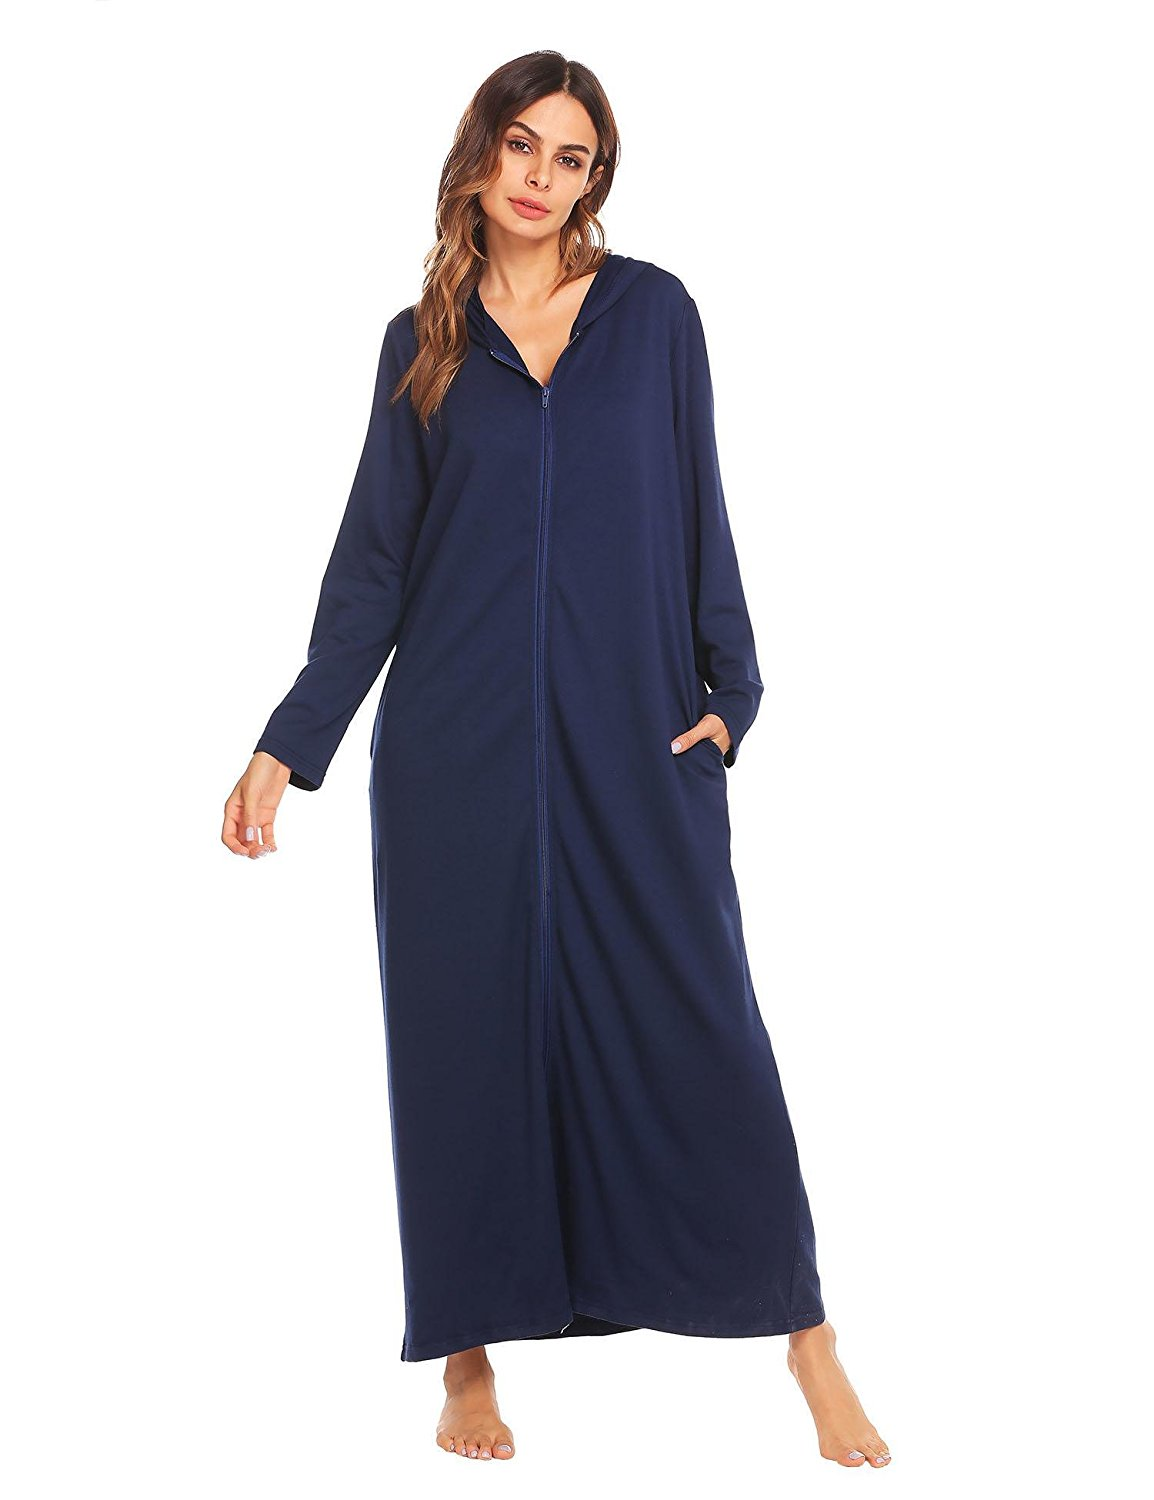 08b51c651d Get Quotations · Adoeve Hoodie Bathrobe Women s Zip Front Robes Long Full  Length Robe Ultra-Soft Nightwear S